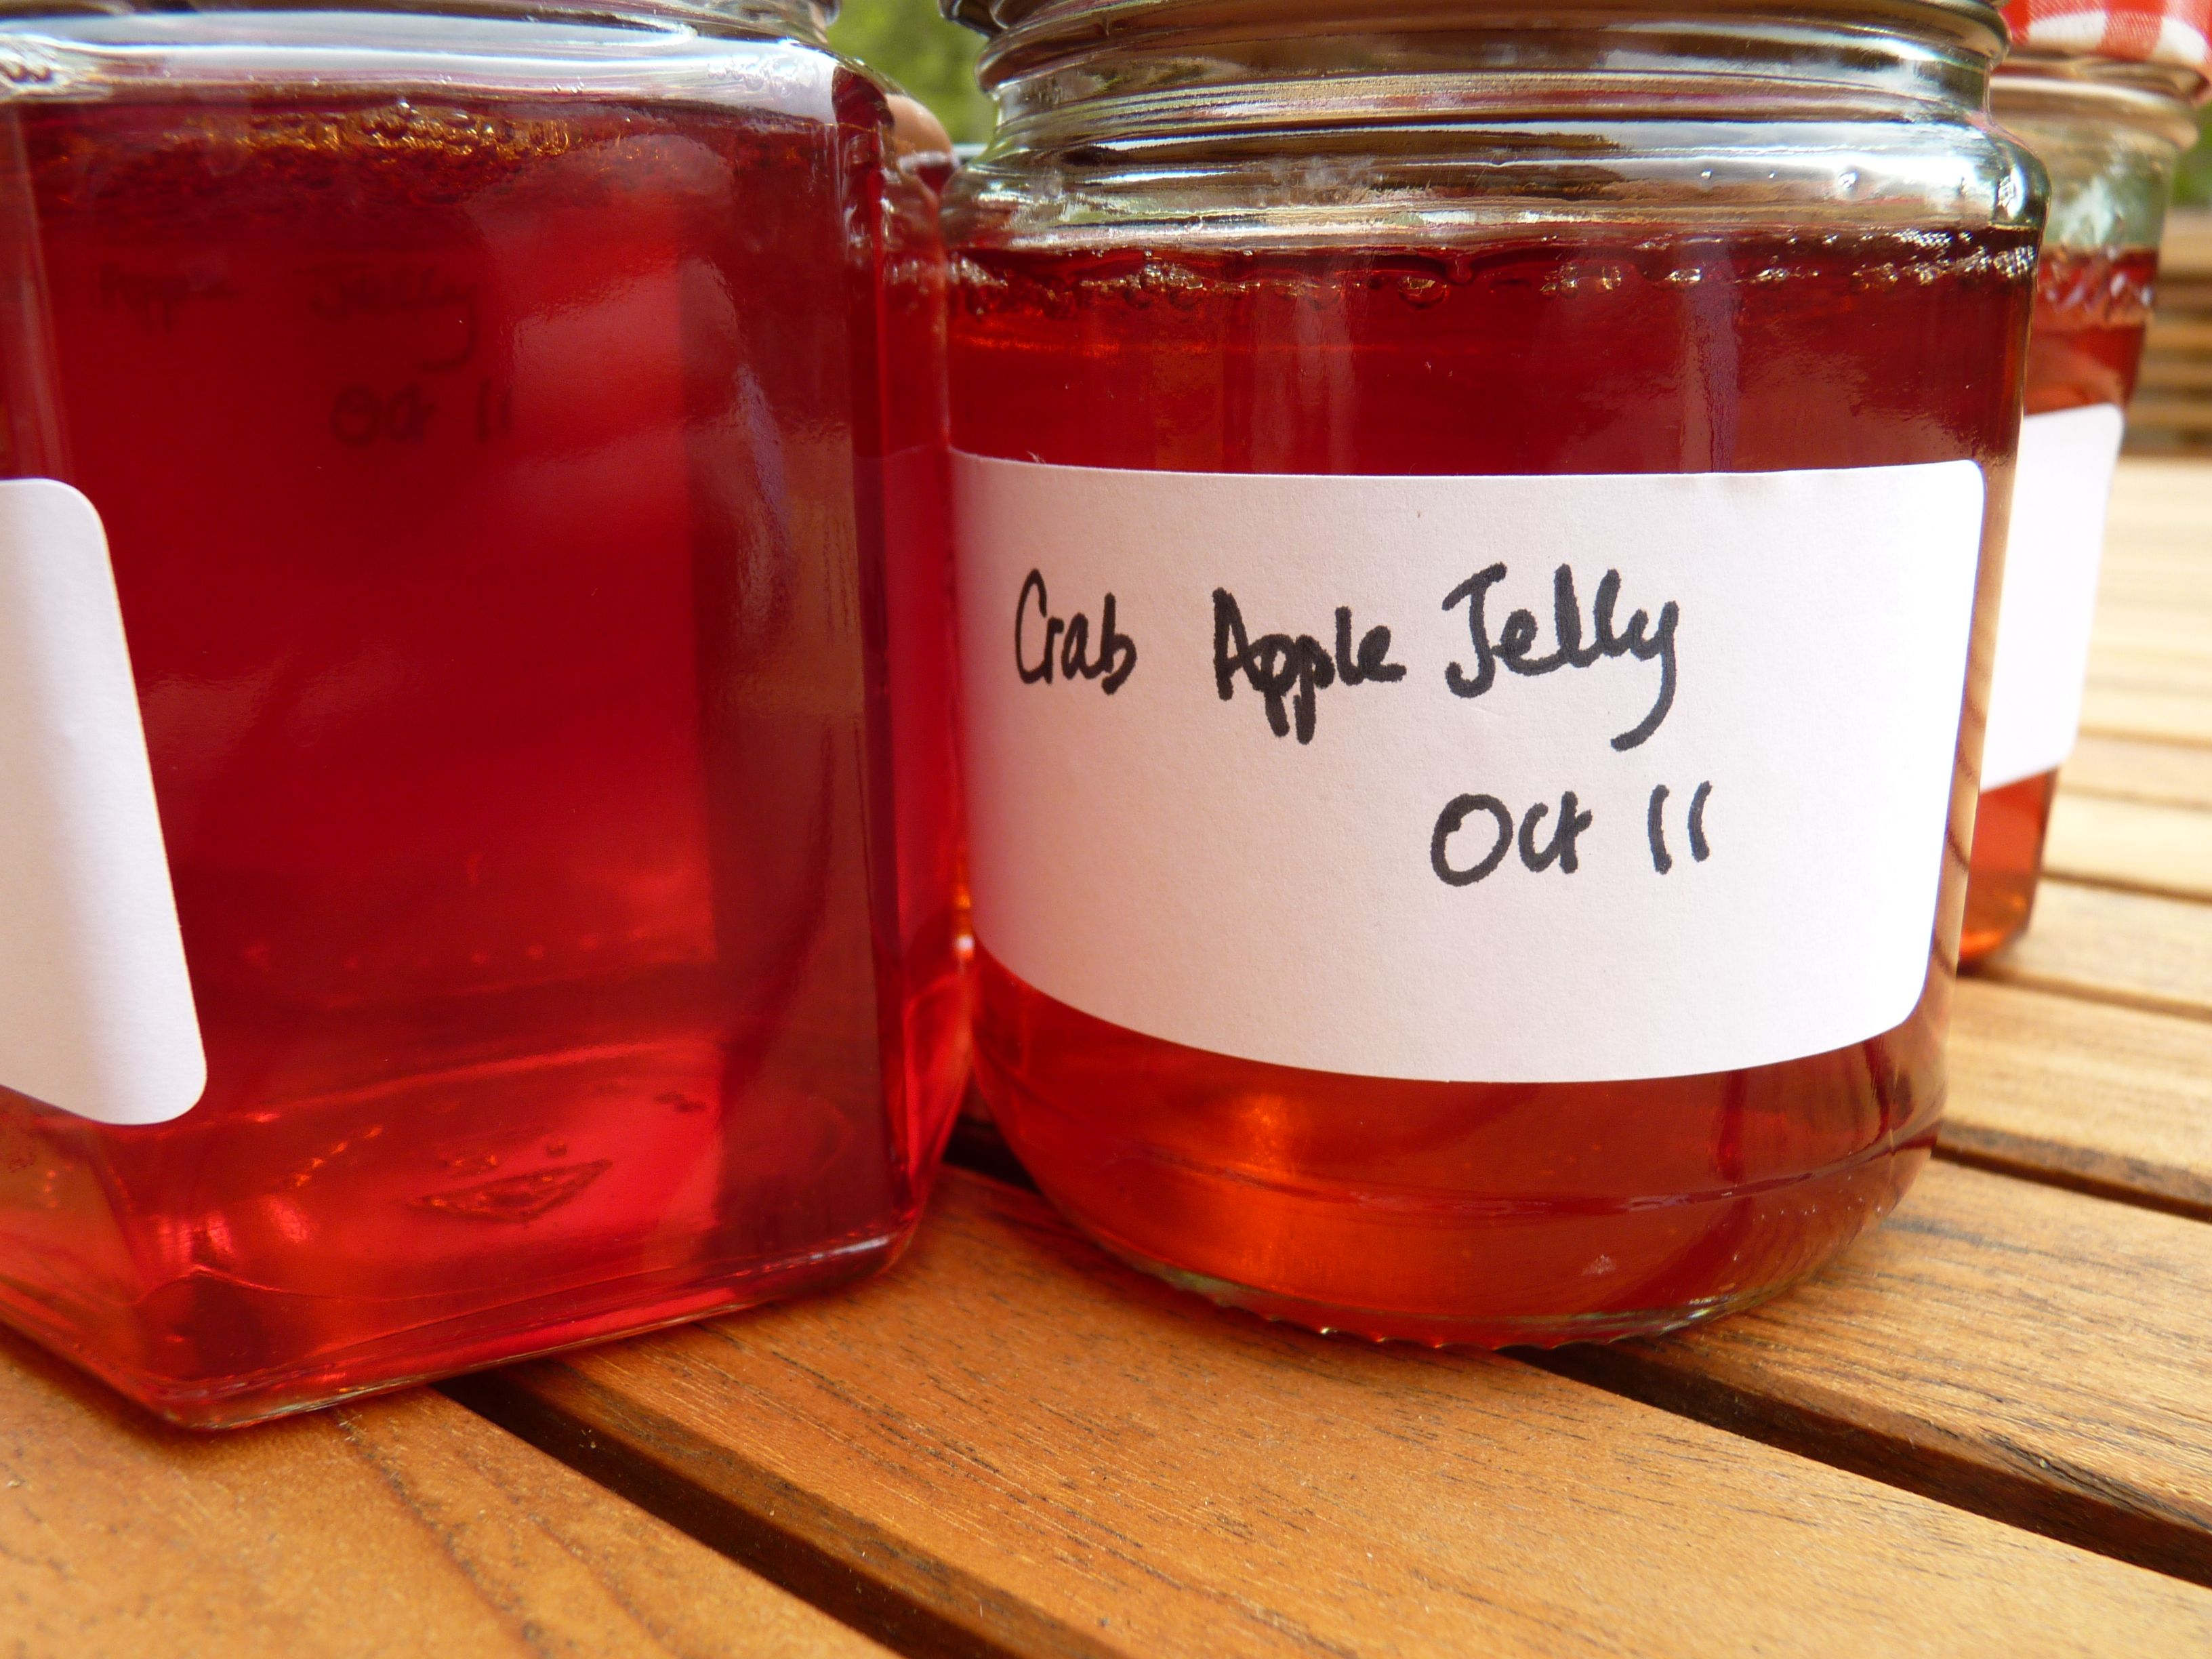 Crabapple jelly | The Ordinary Cook